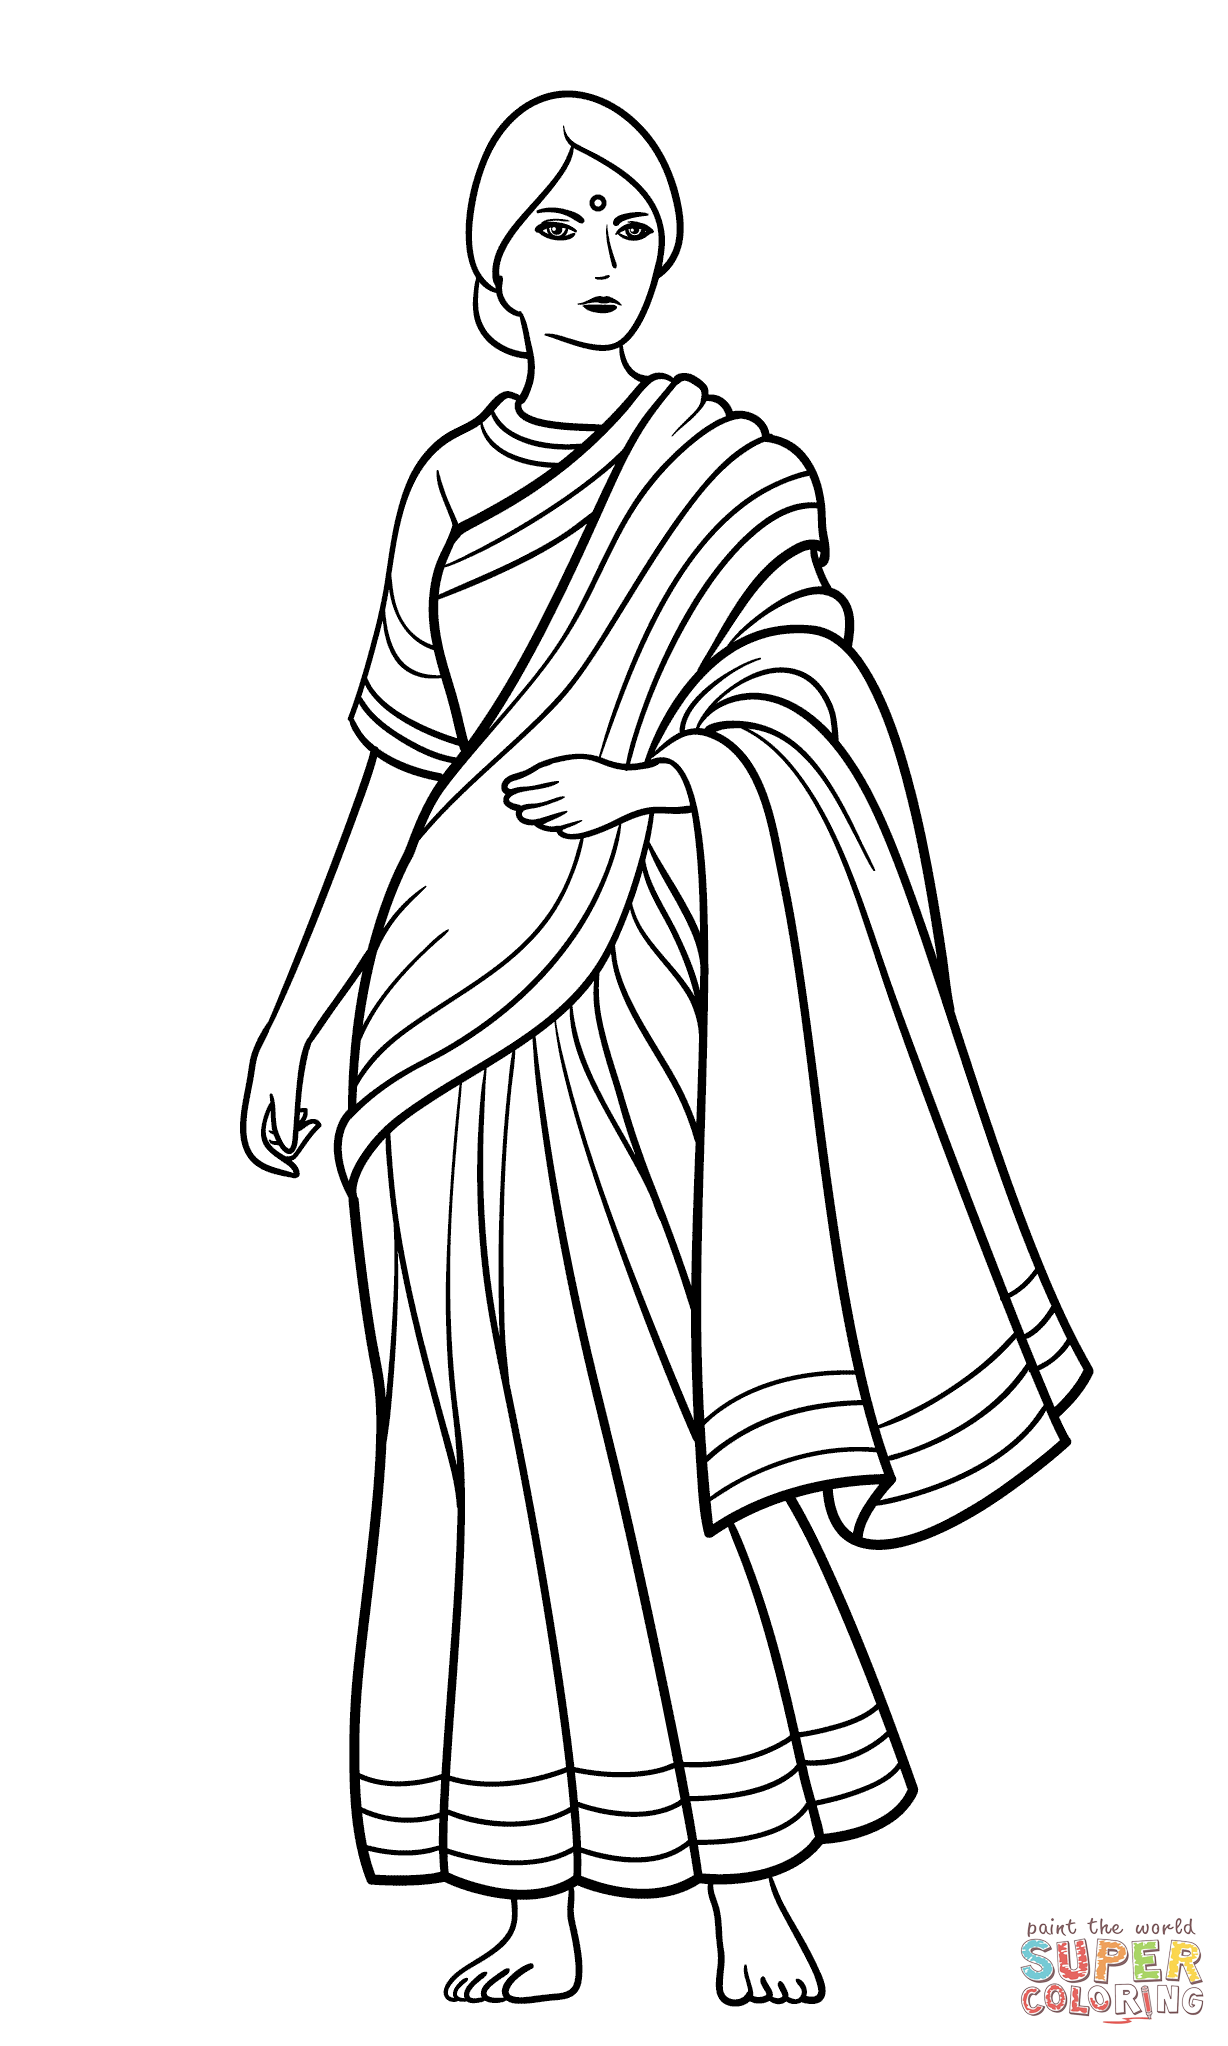 Indian Man Coloring Page